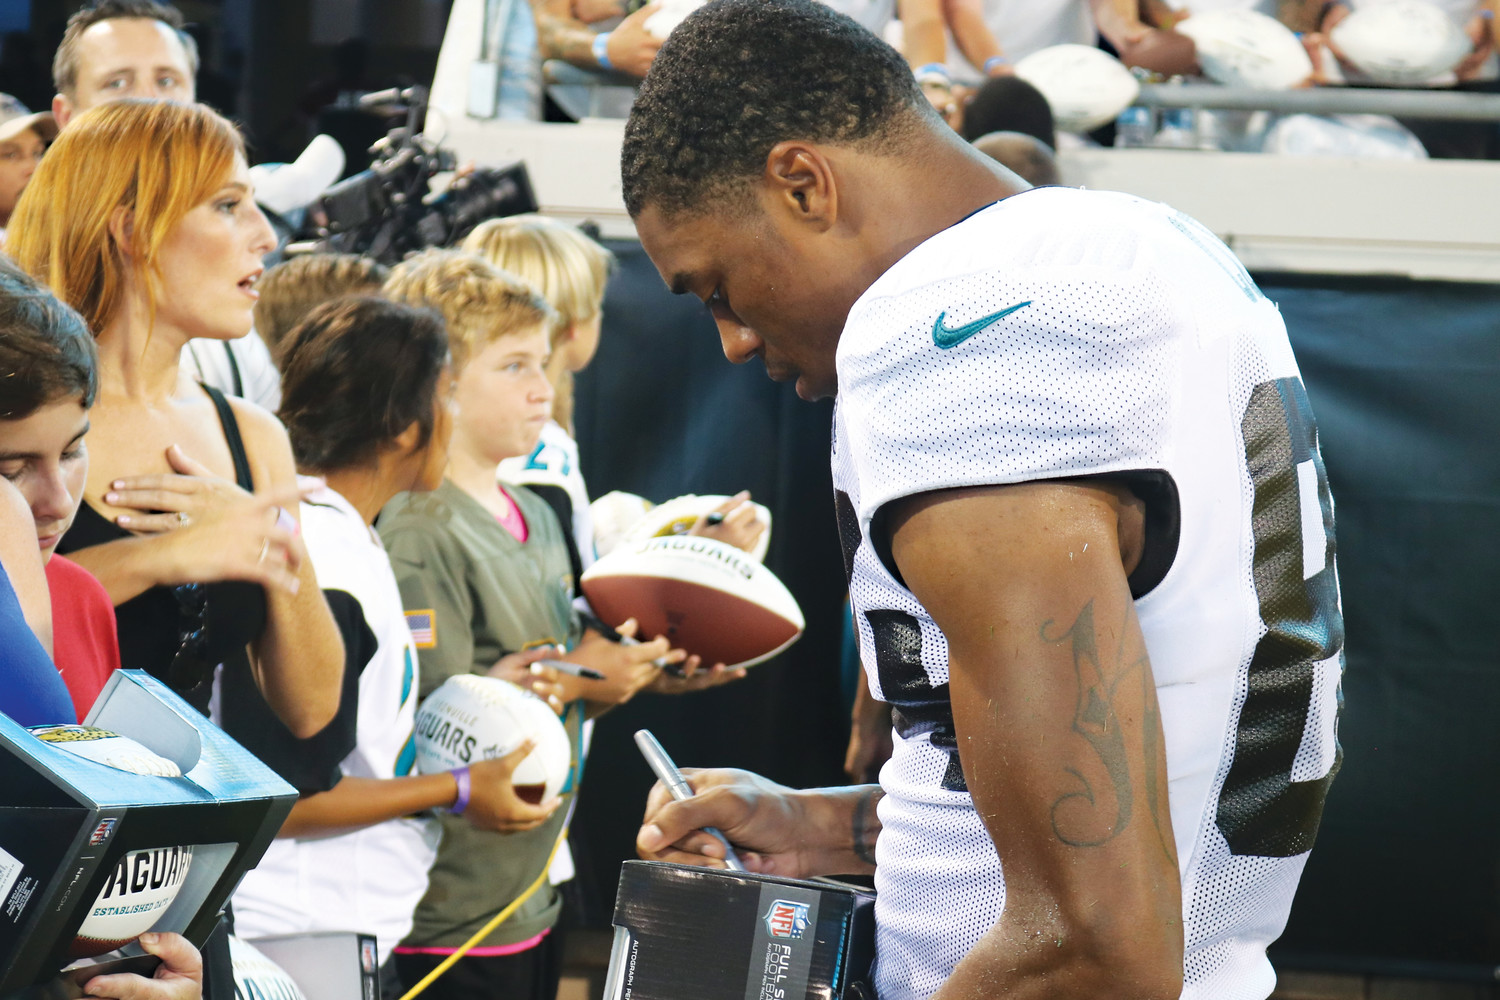 Jaguars wide receiver Keelan Cole signs autographs for fans.